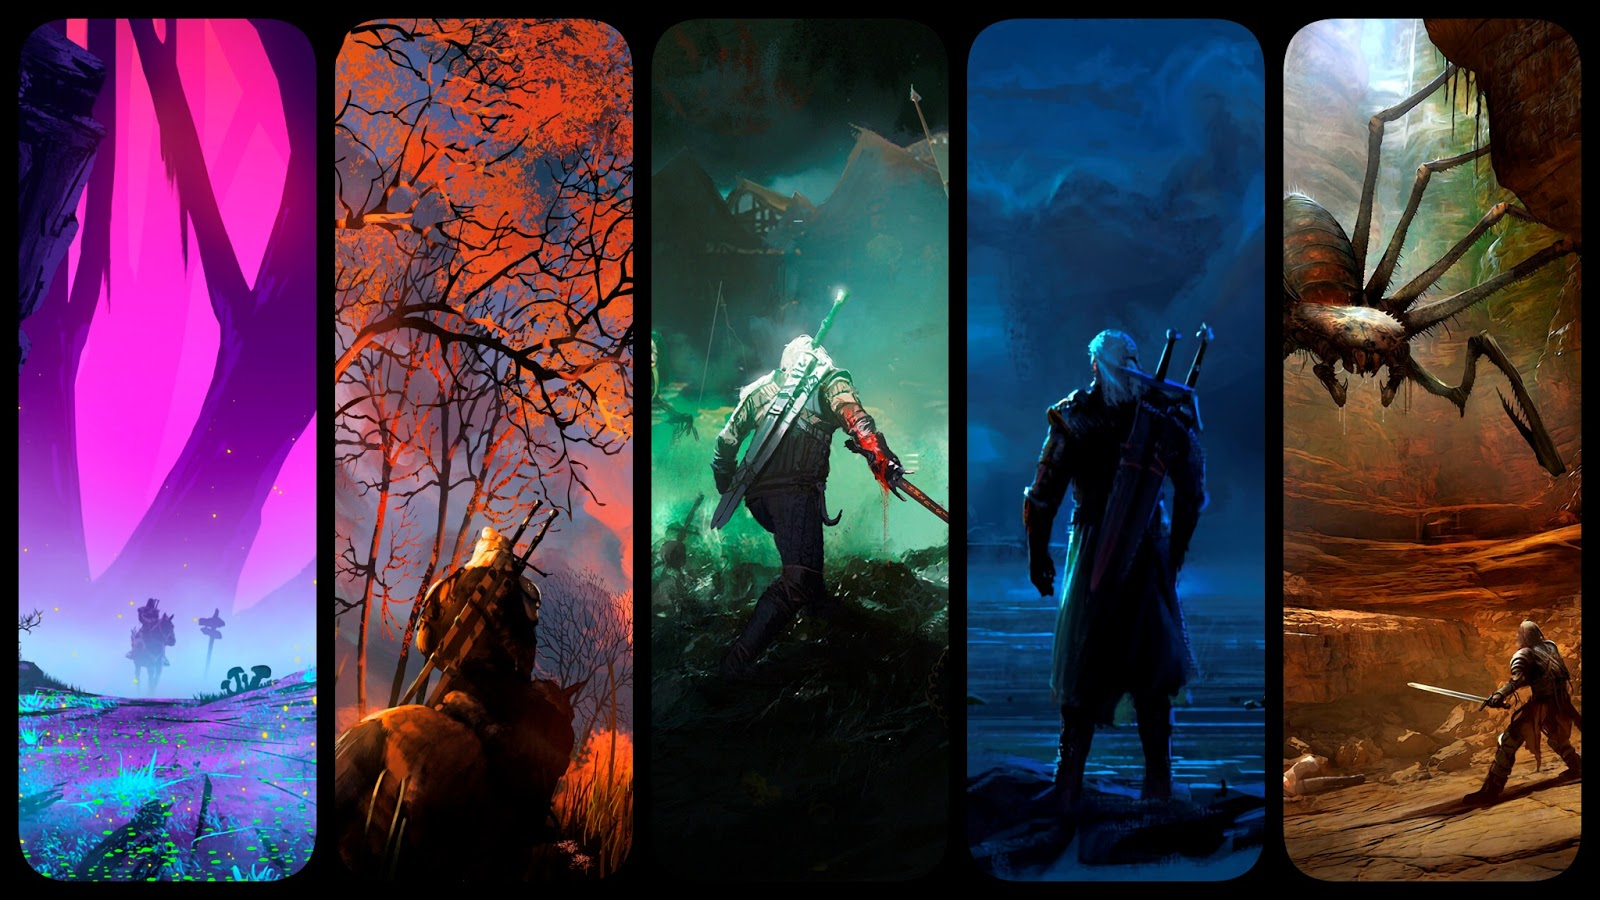 The Witcher phone wallpaper collection